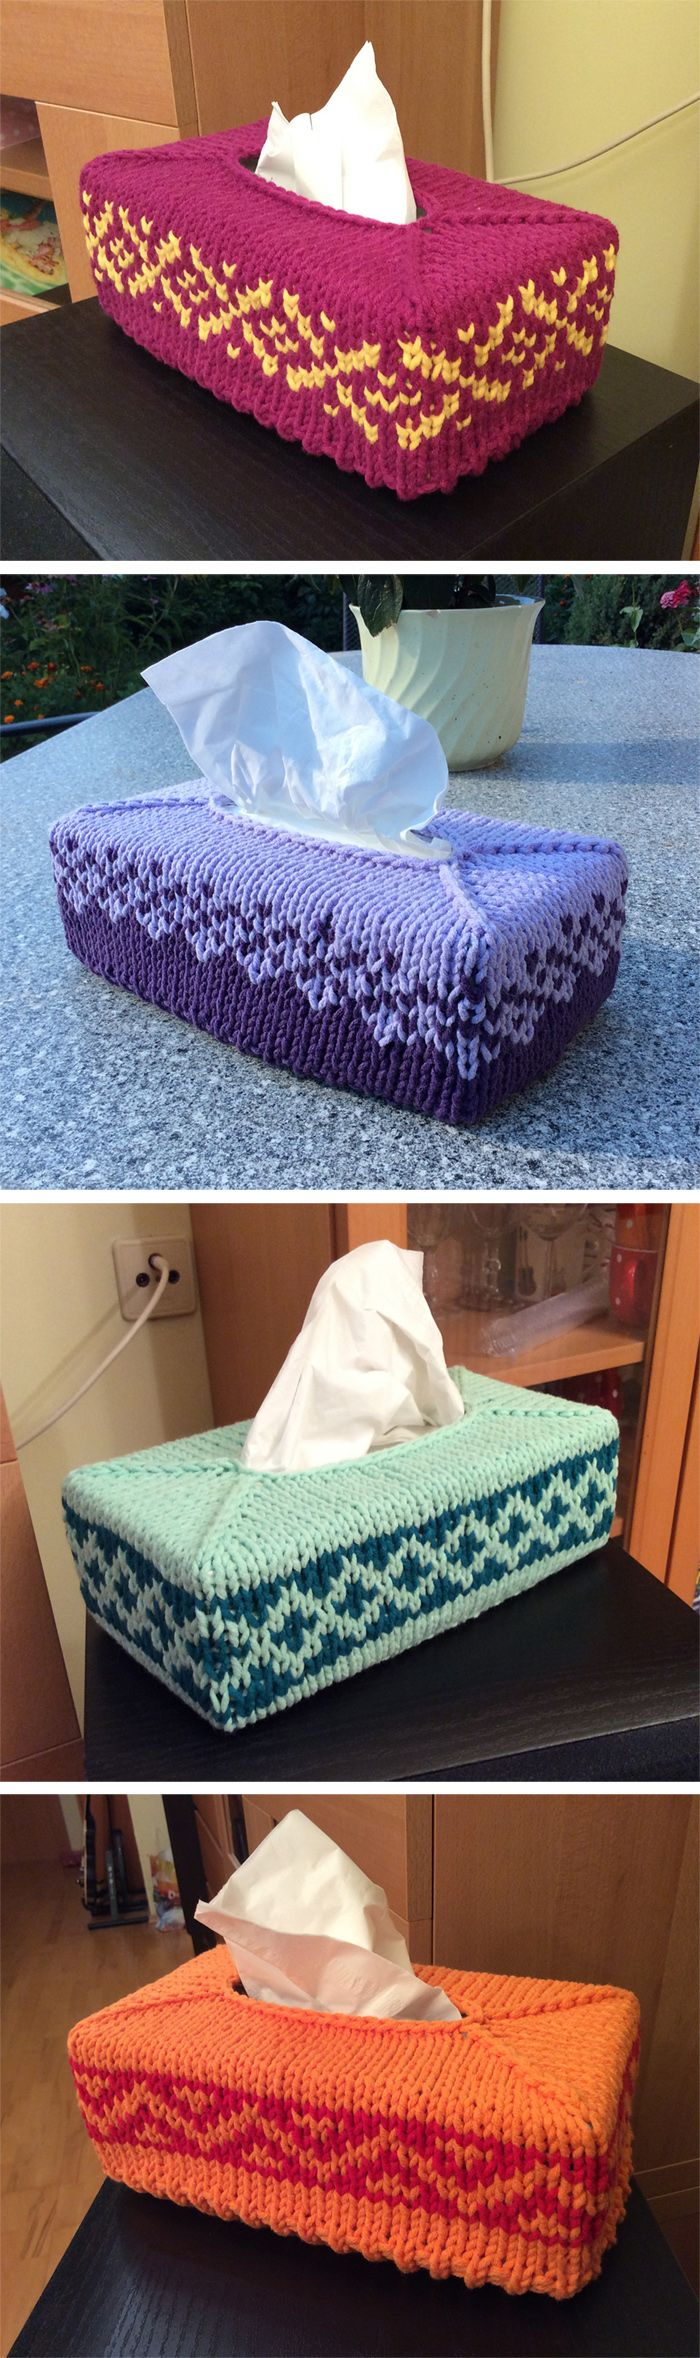 Free Knitting Pattern for Fair Isle Tissue Box Cover - Great stash ...